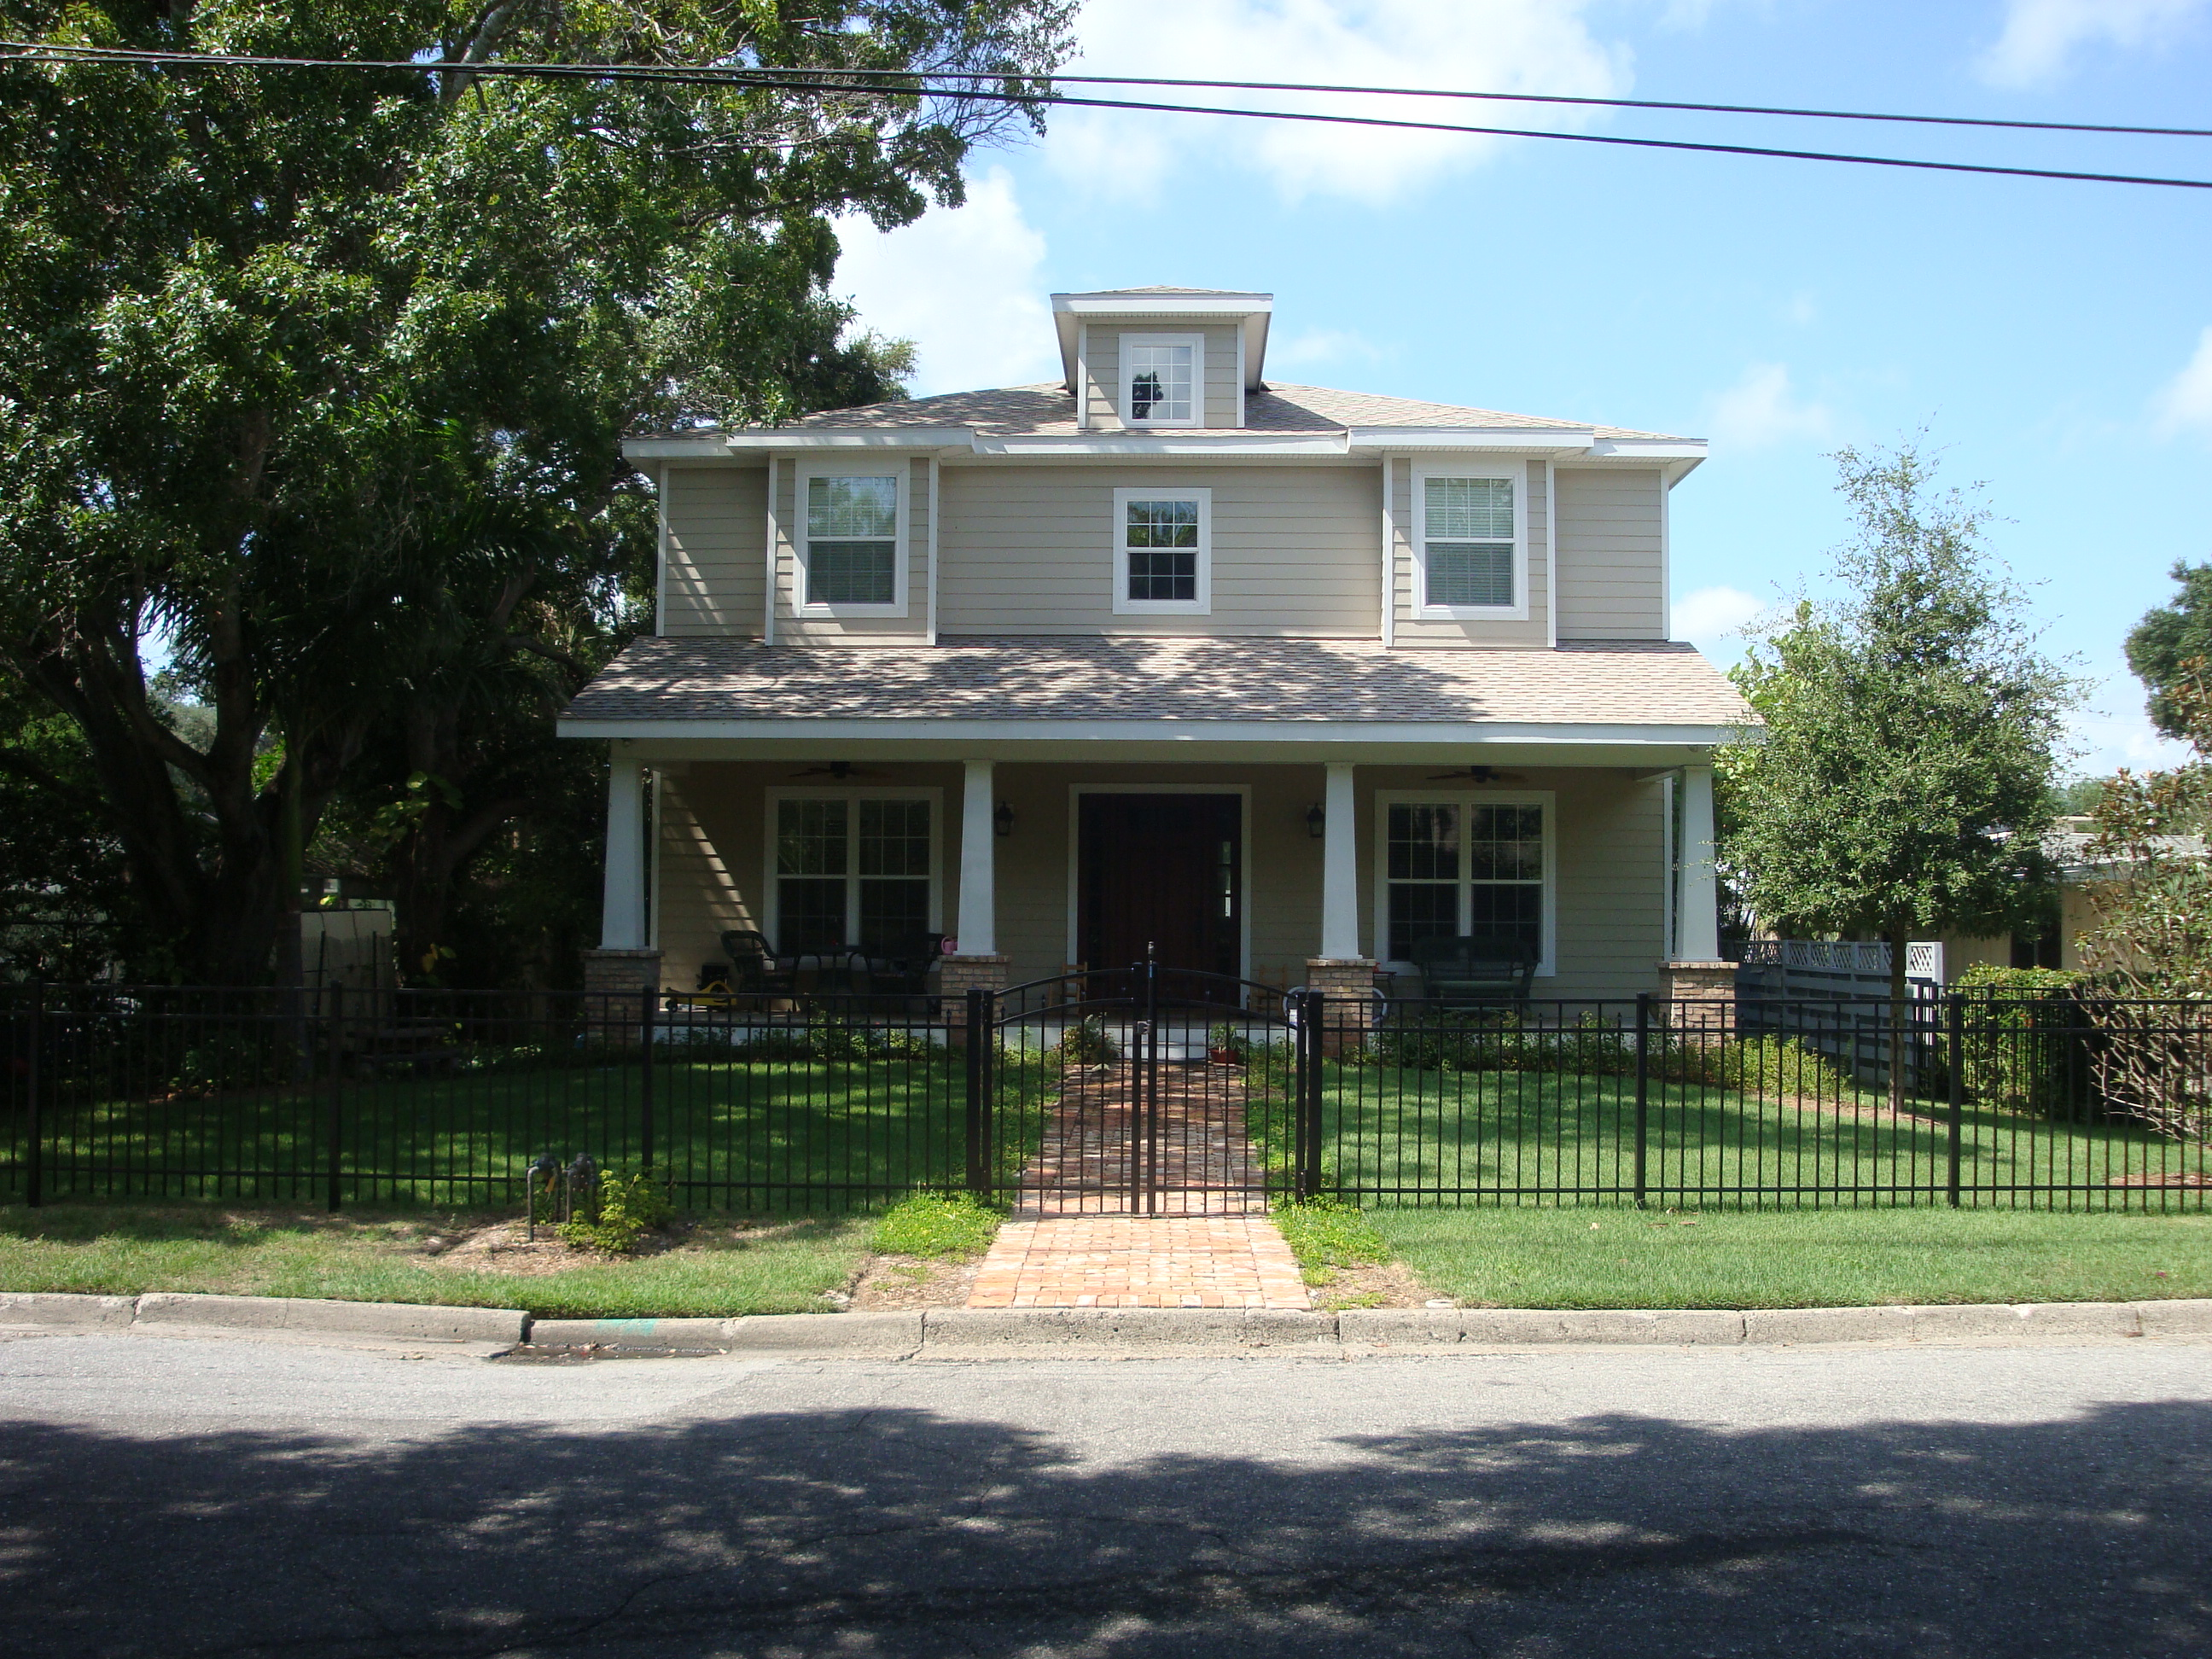 28 Two Story Bungalow Two Story Bungalow House